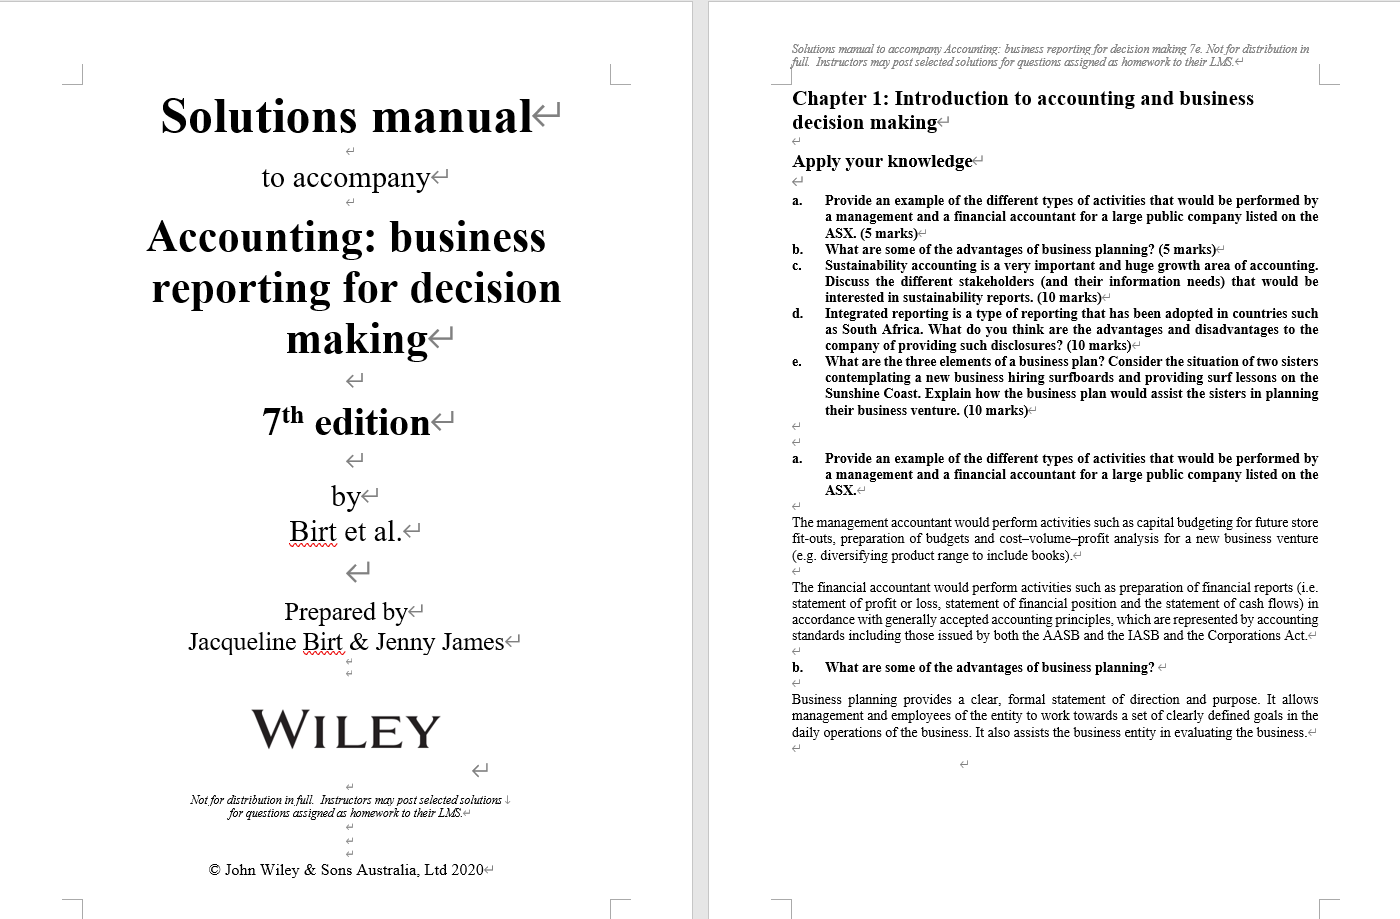 Solution manual for Accounting: Business Reporting for Decision Making 7th Edition by Jacqueline Birt的图片 3